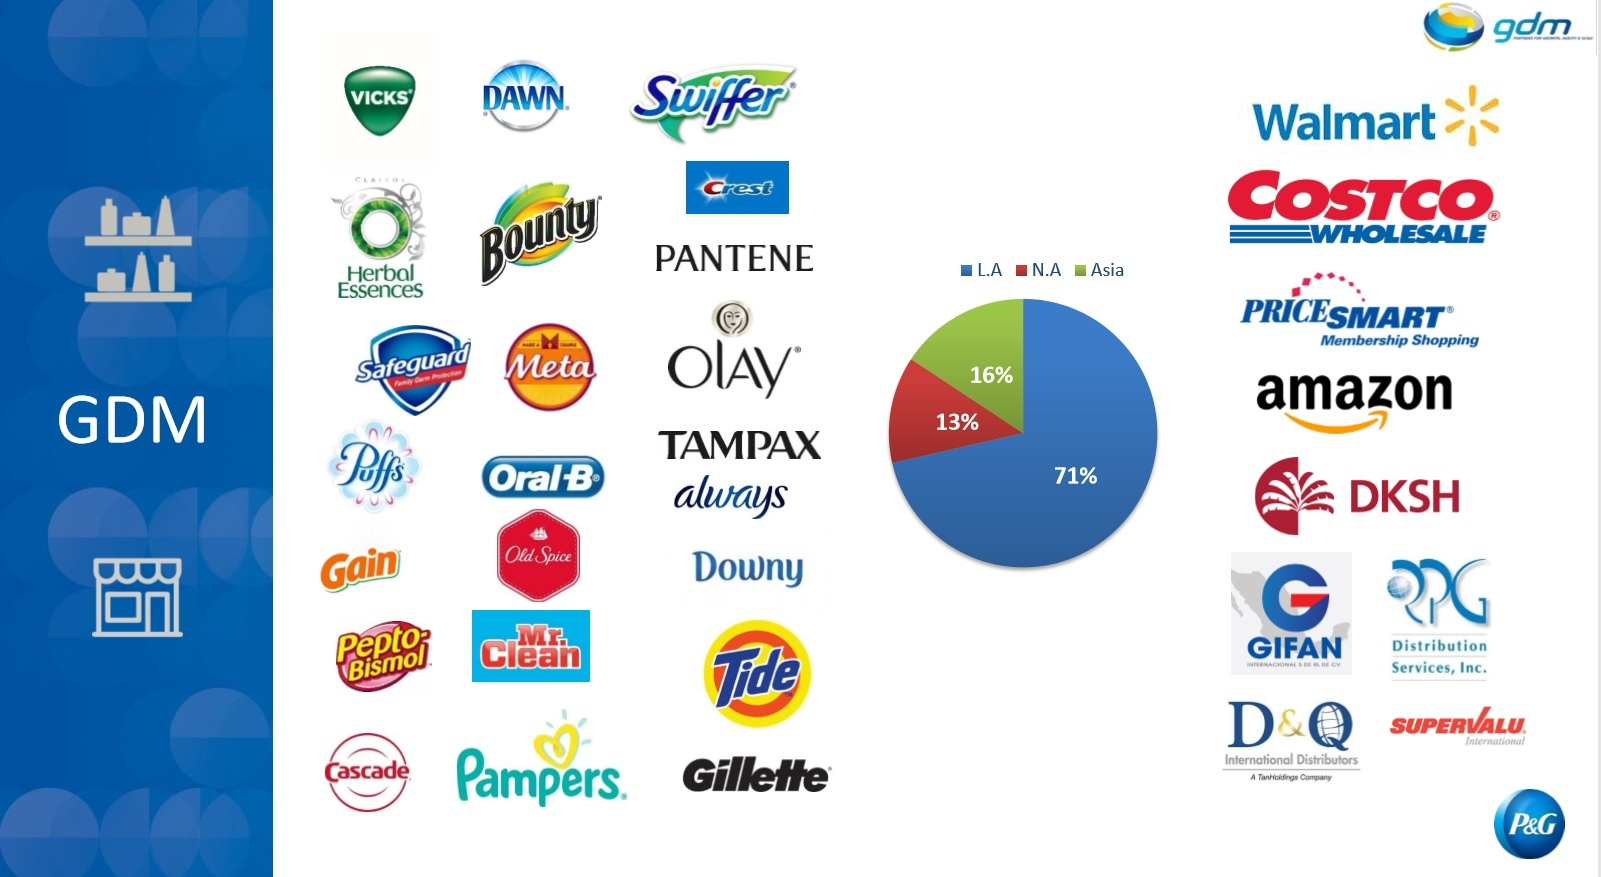 Procter Gamble Brands GDM